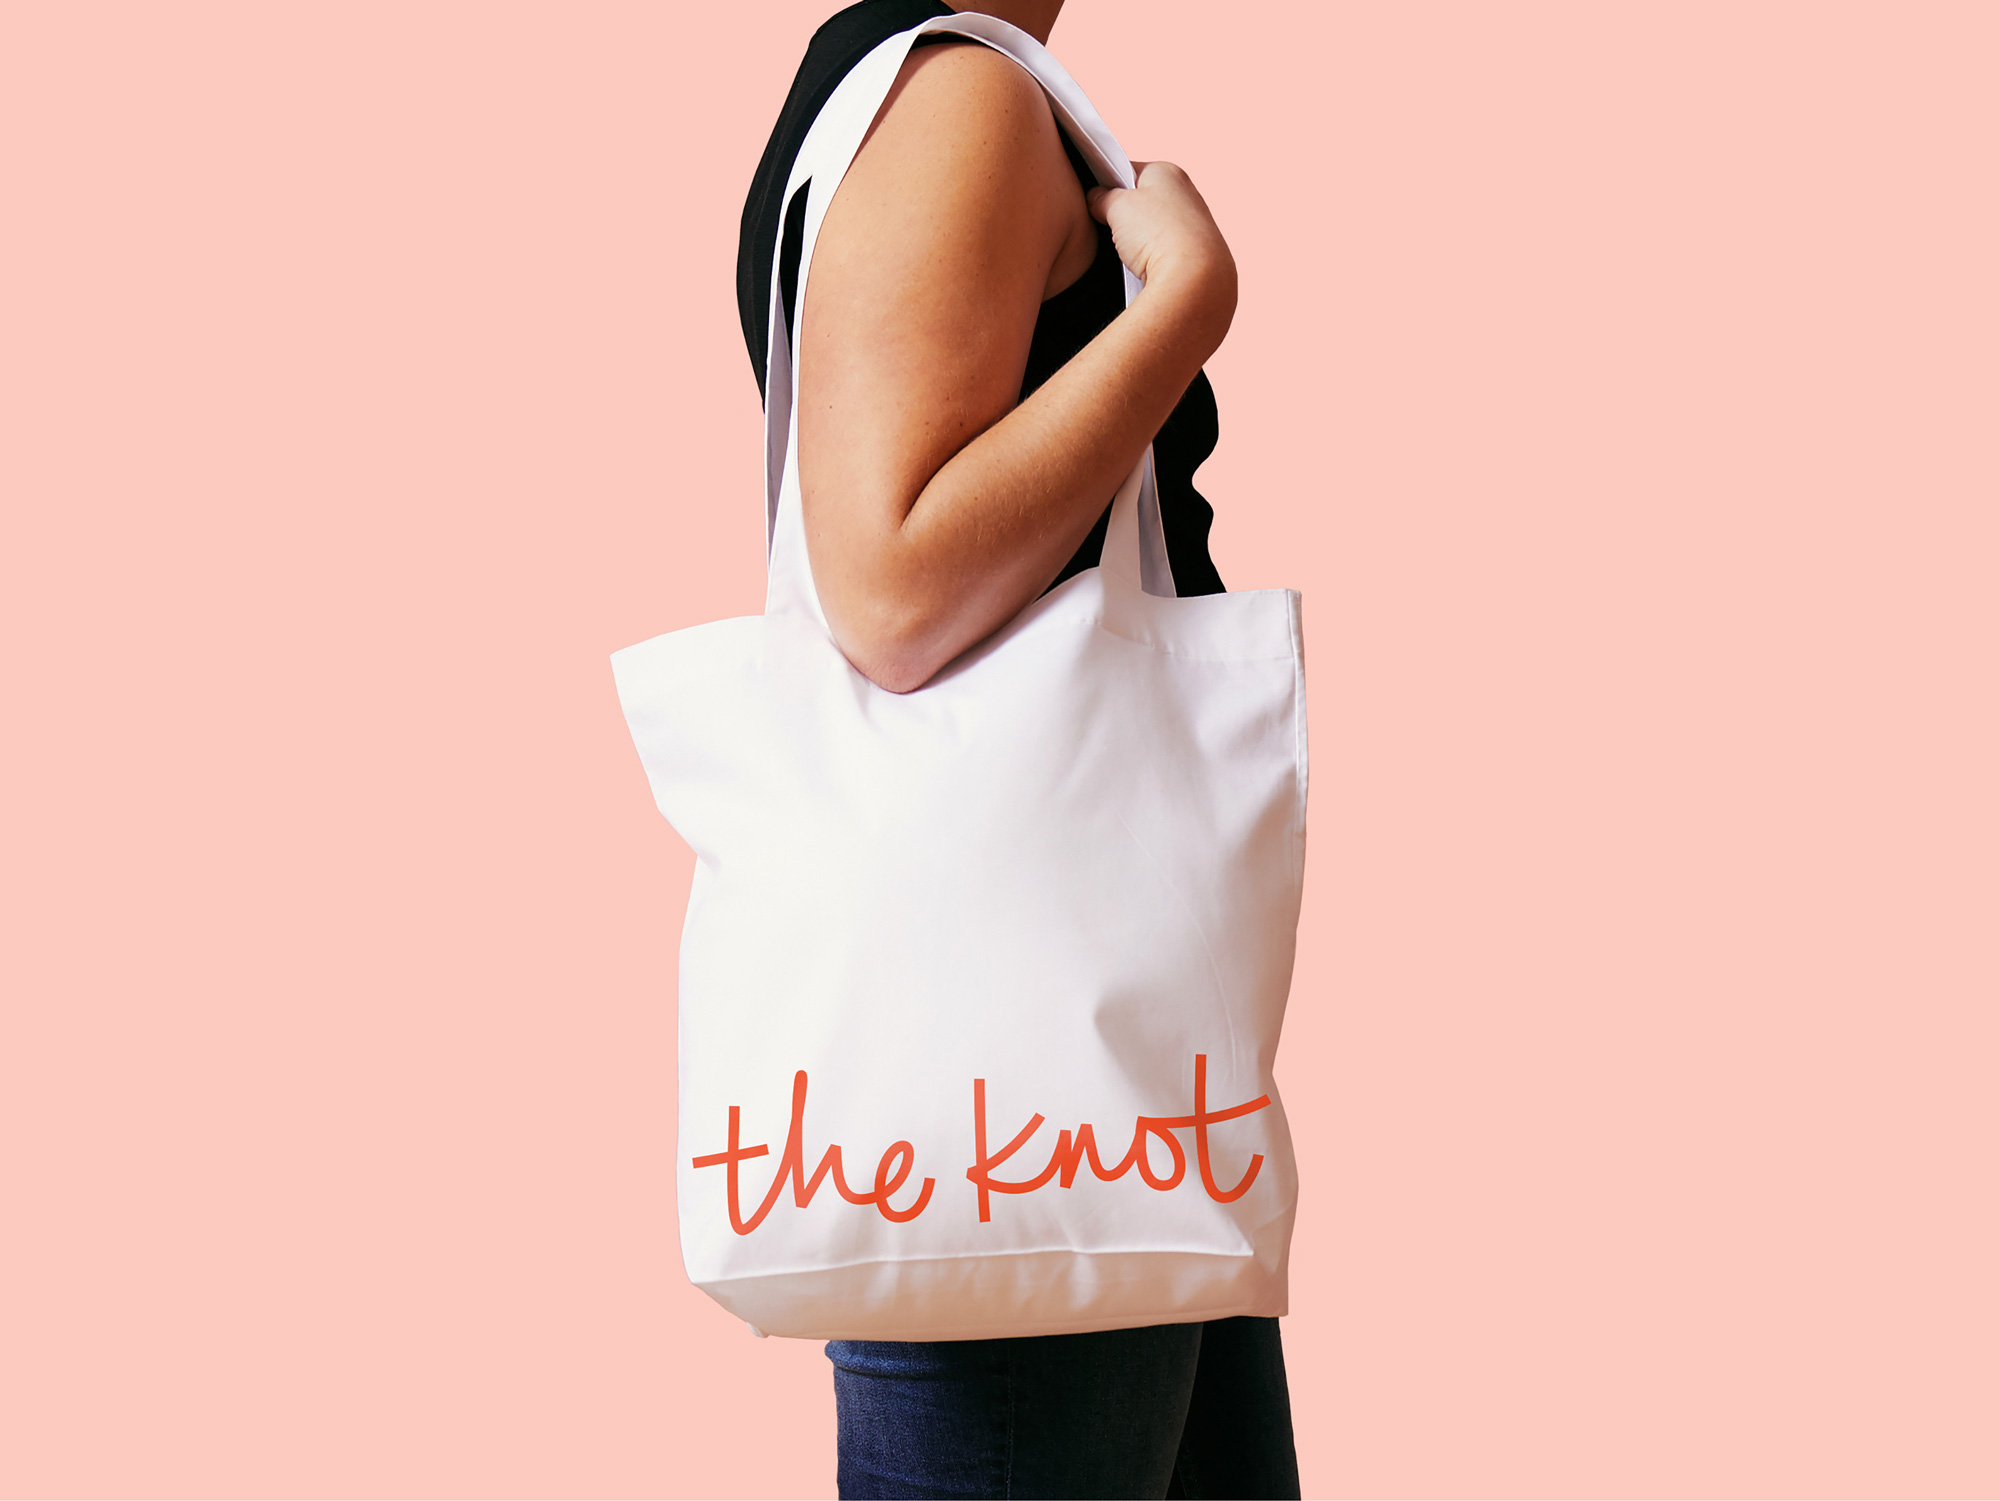 New Logo and Identity for The Knot by Pentagram